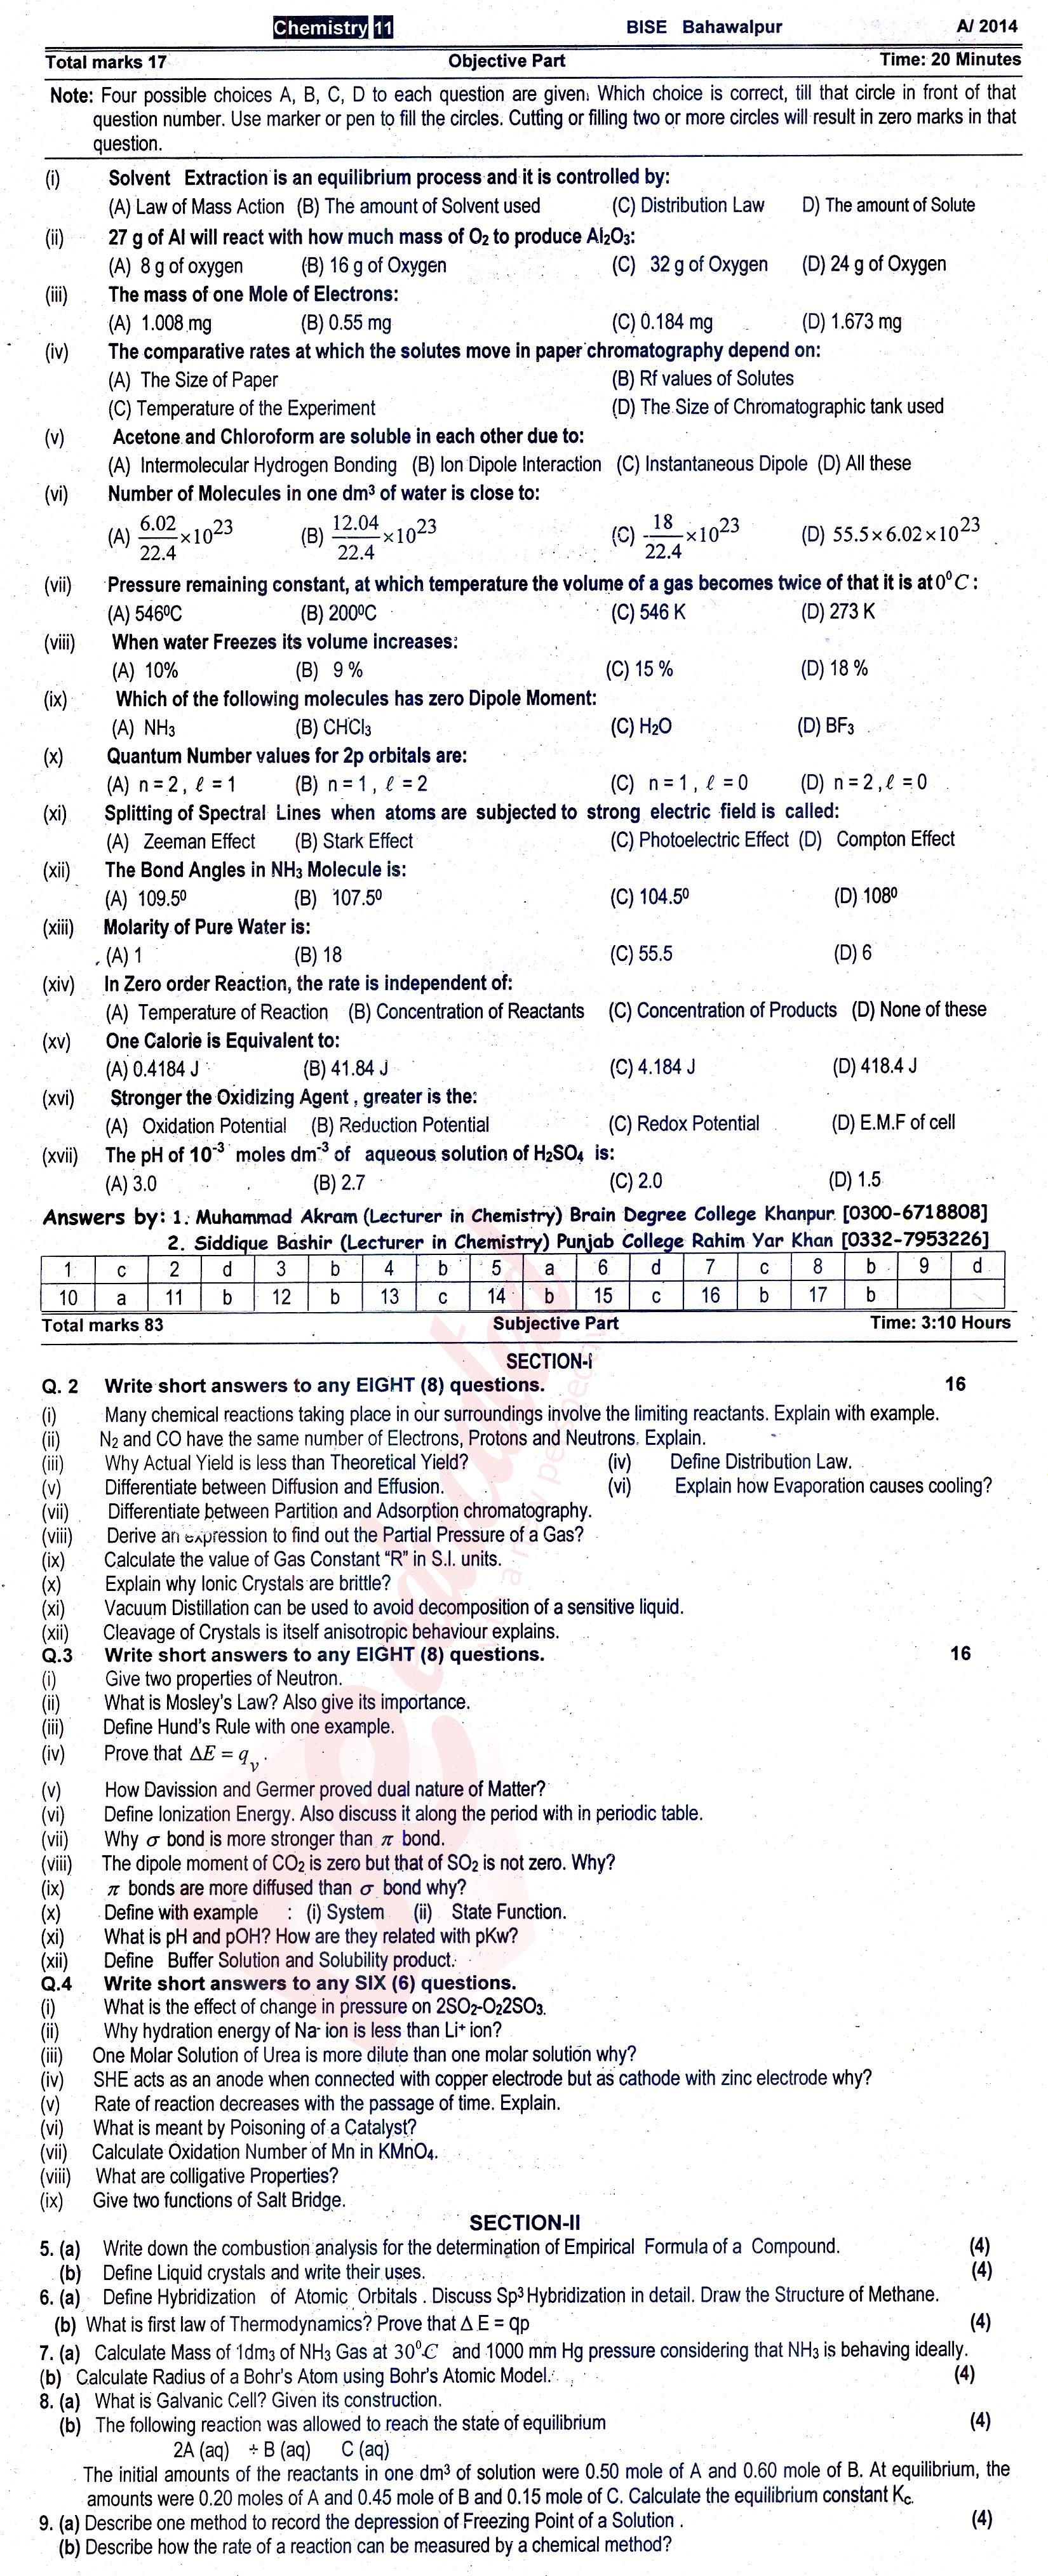 Chemistry Subject BISE Bahawalpur 11th Class FSC Part 1